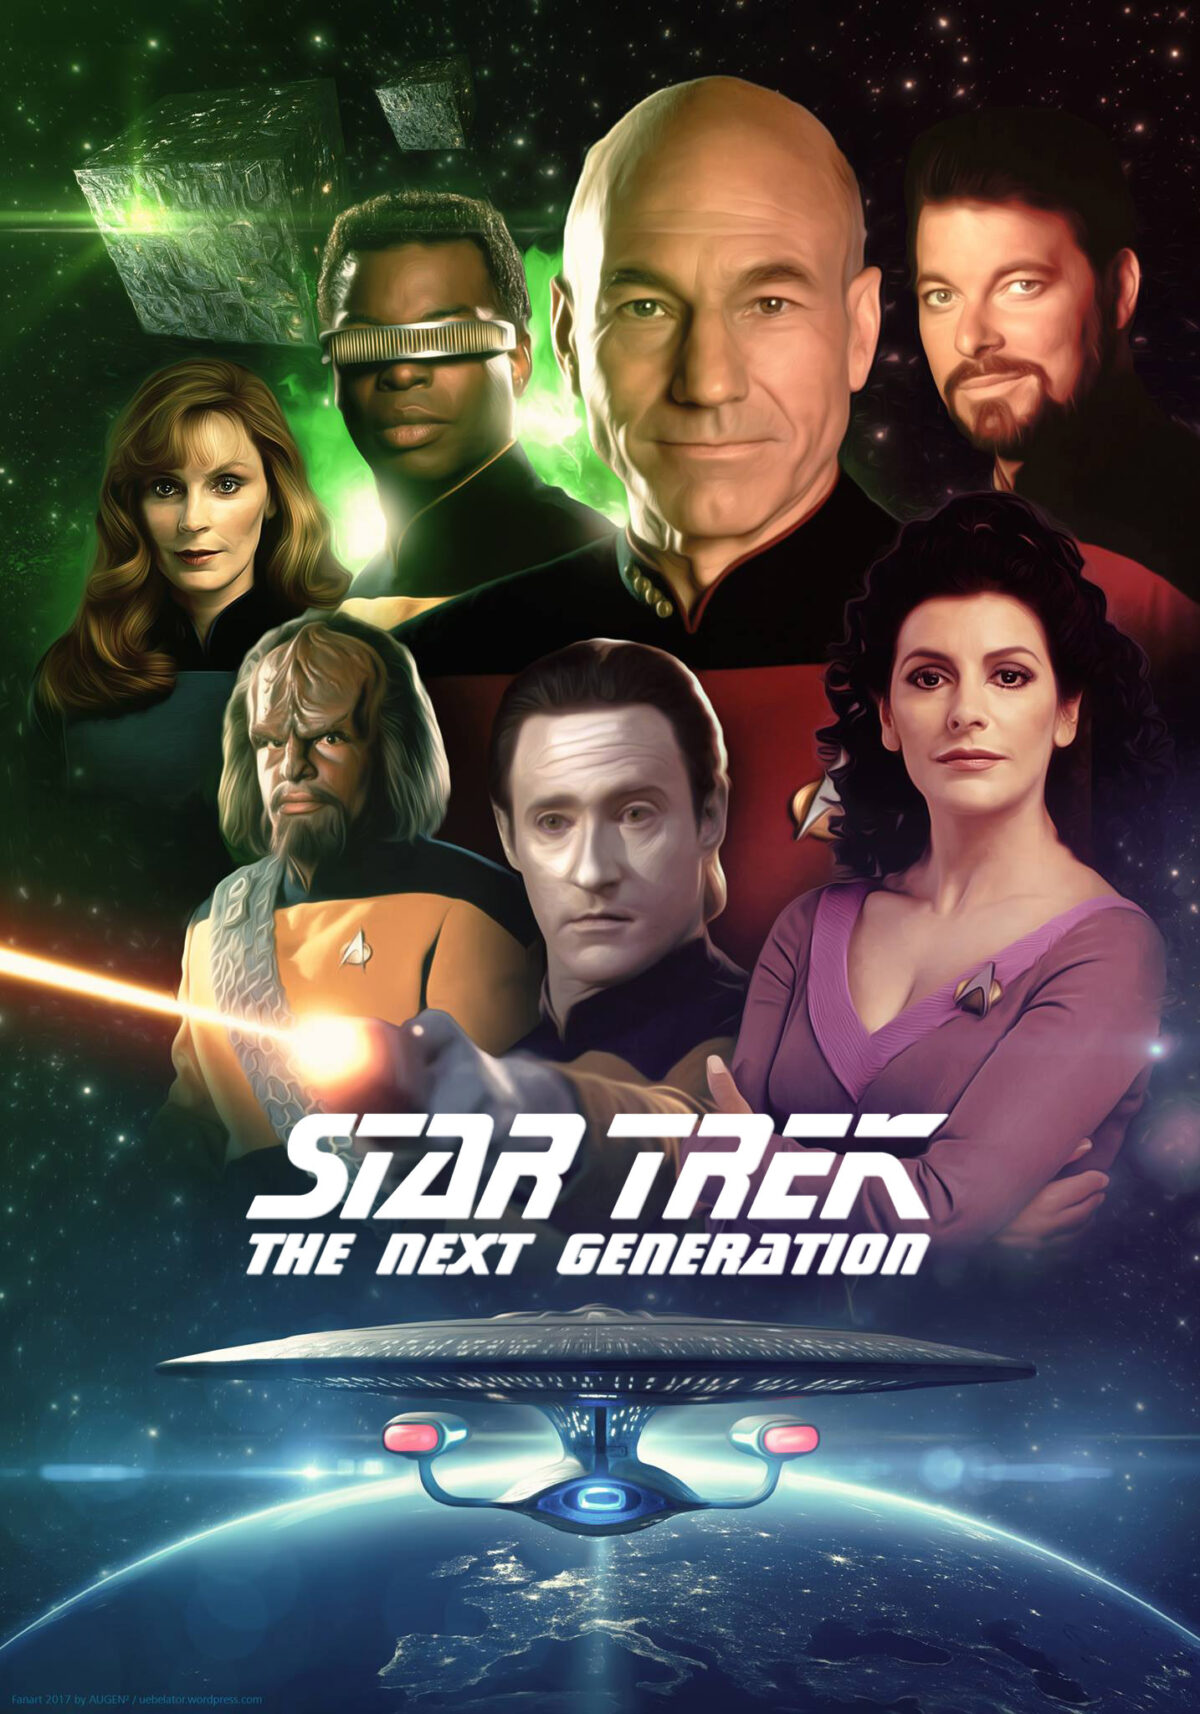 poster featuring the cast of star trek the next generation and the ship enterprise